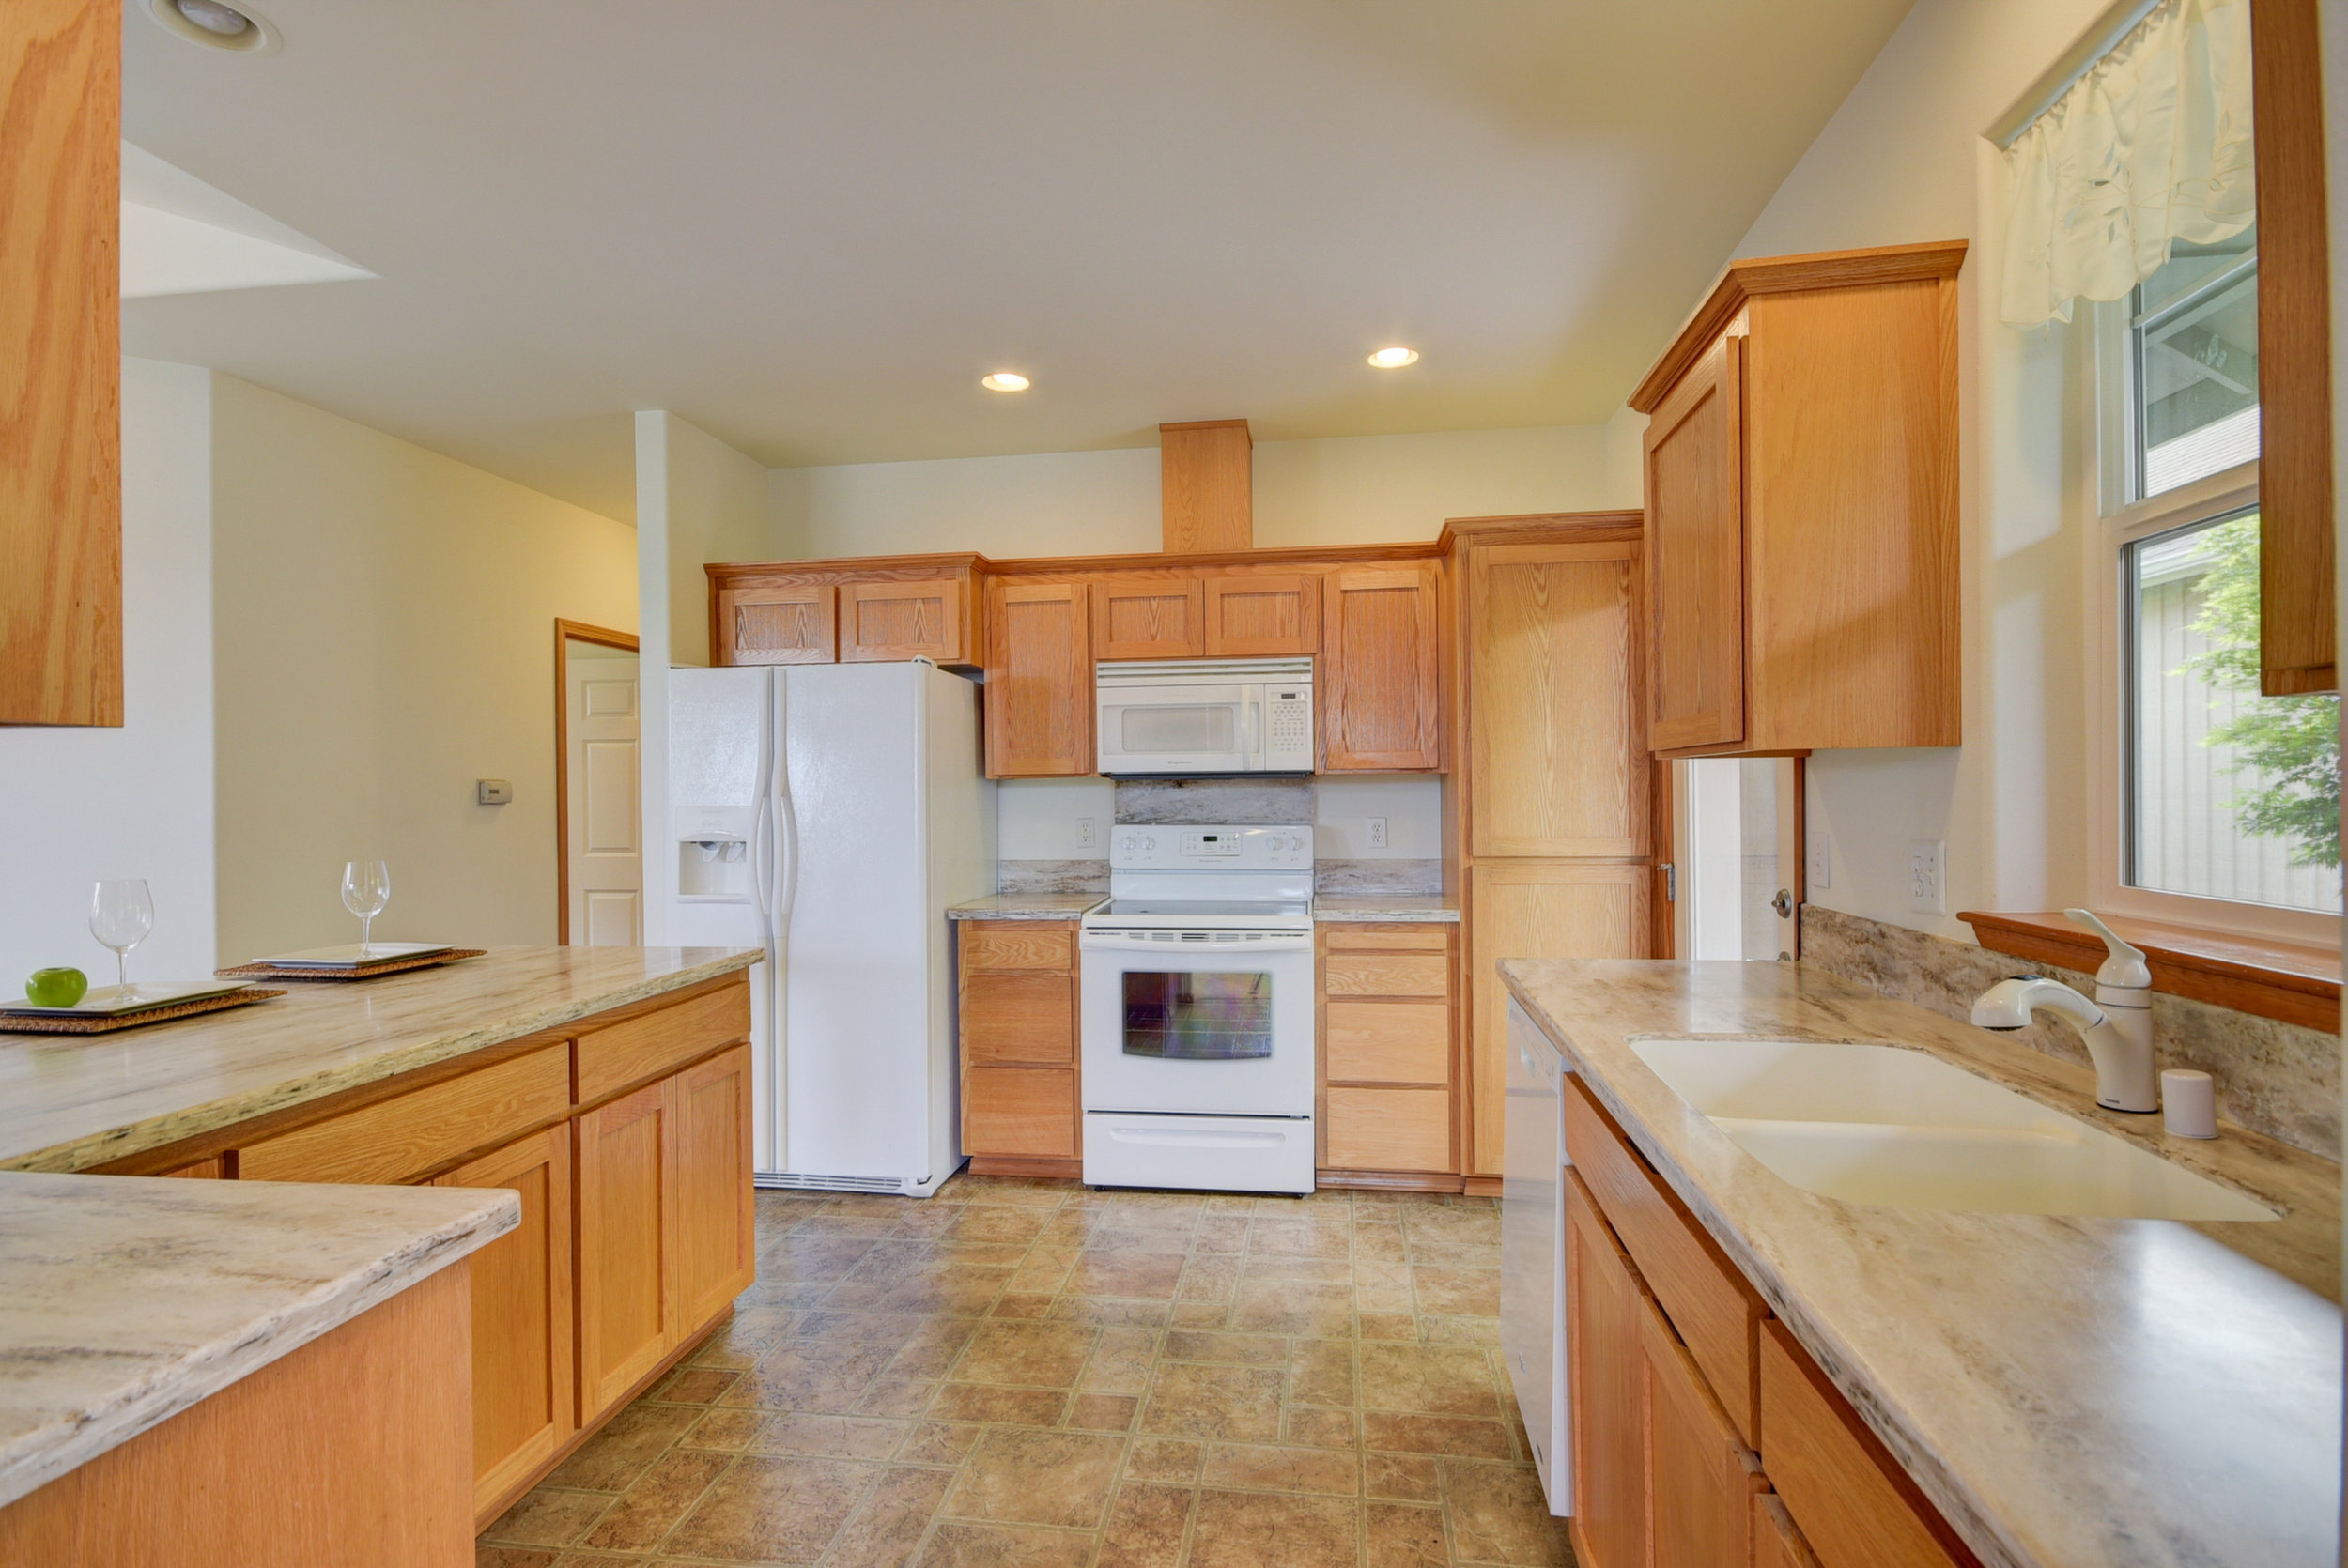 Generous kitchen with ample storage, upgraded counter-tops, & access to your private porch!